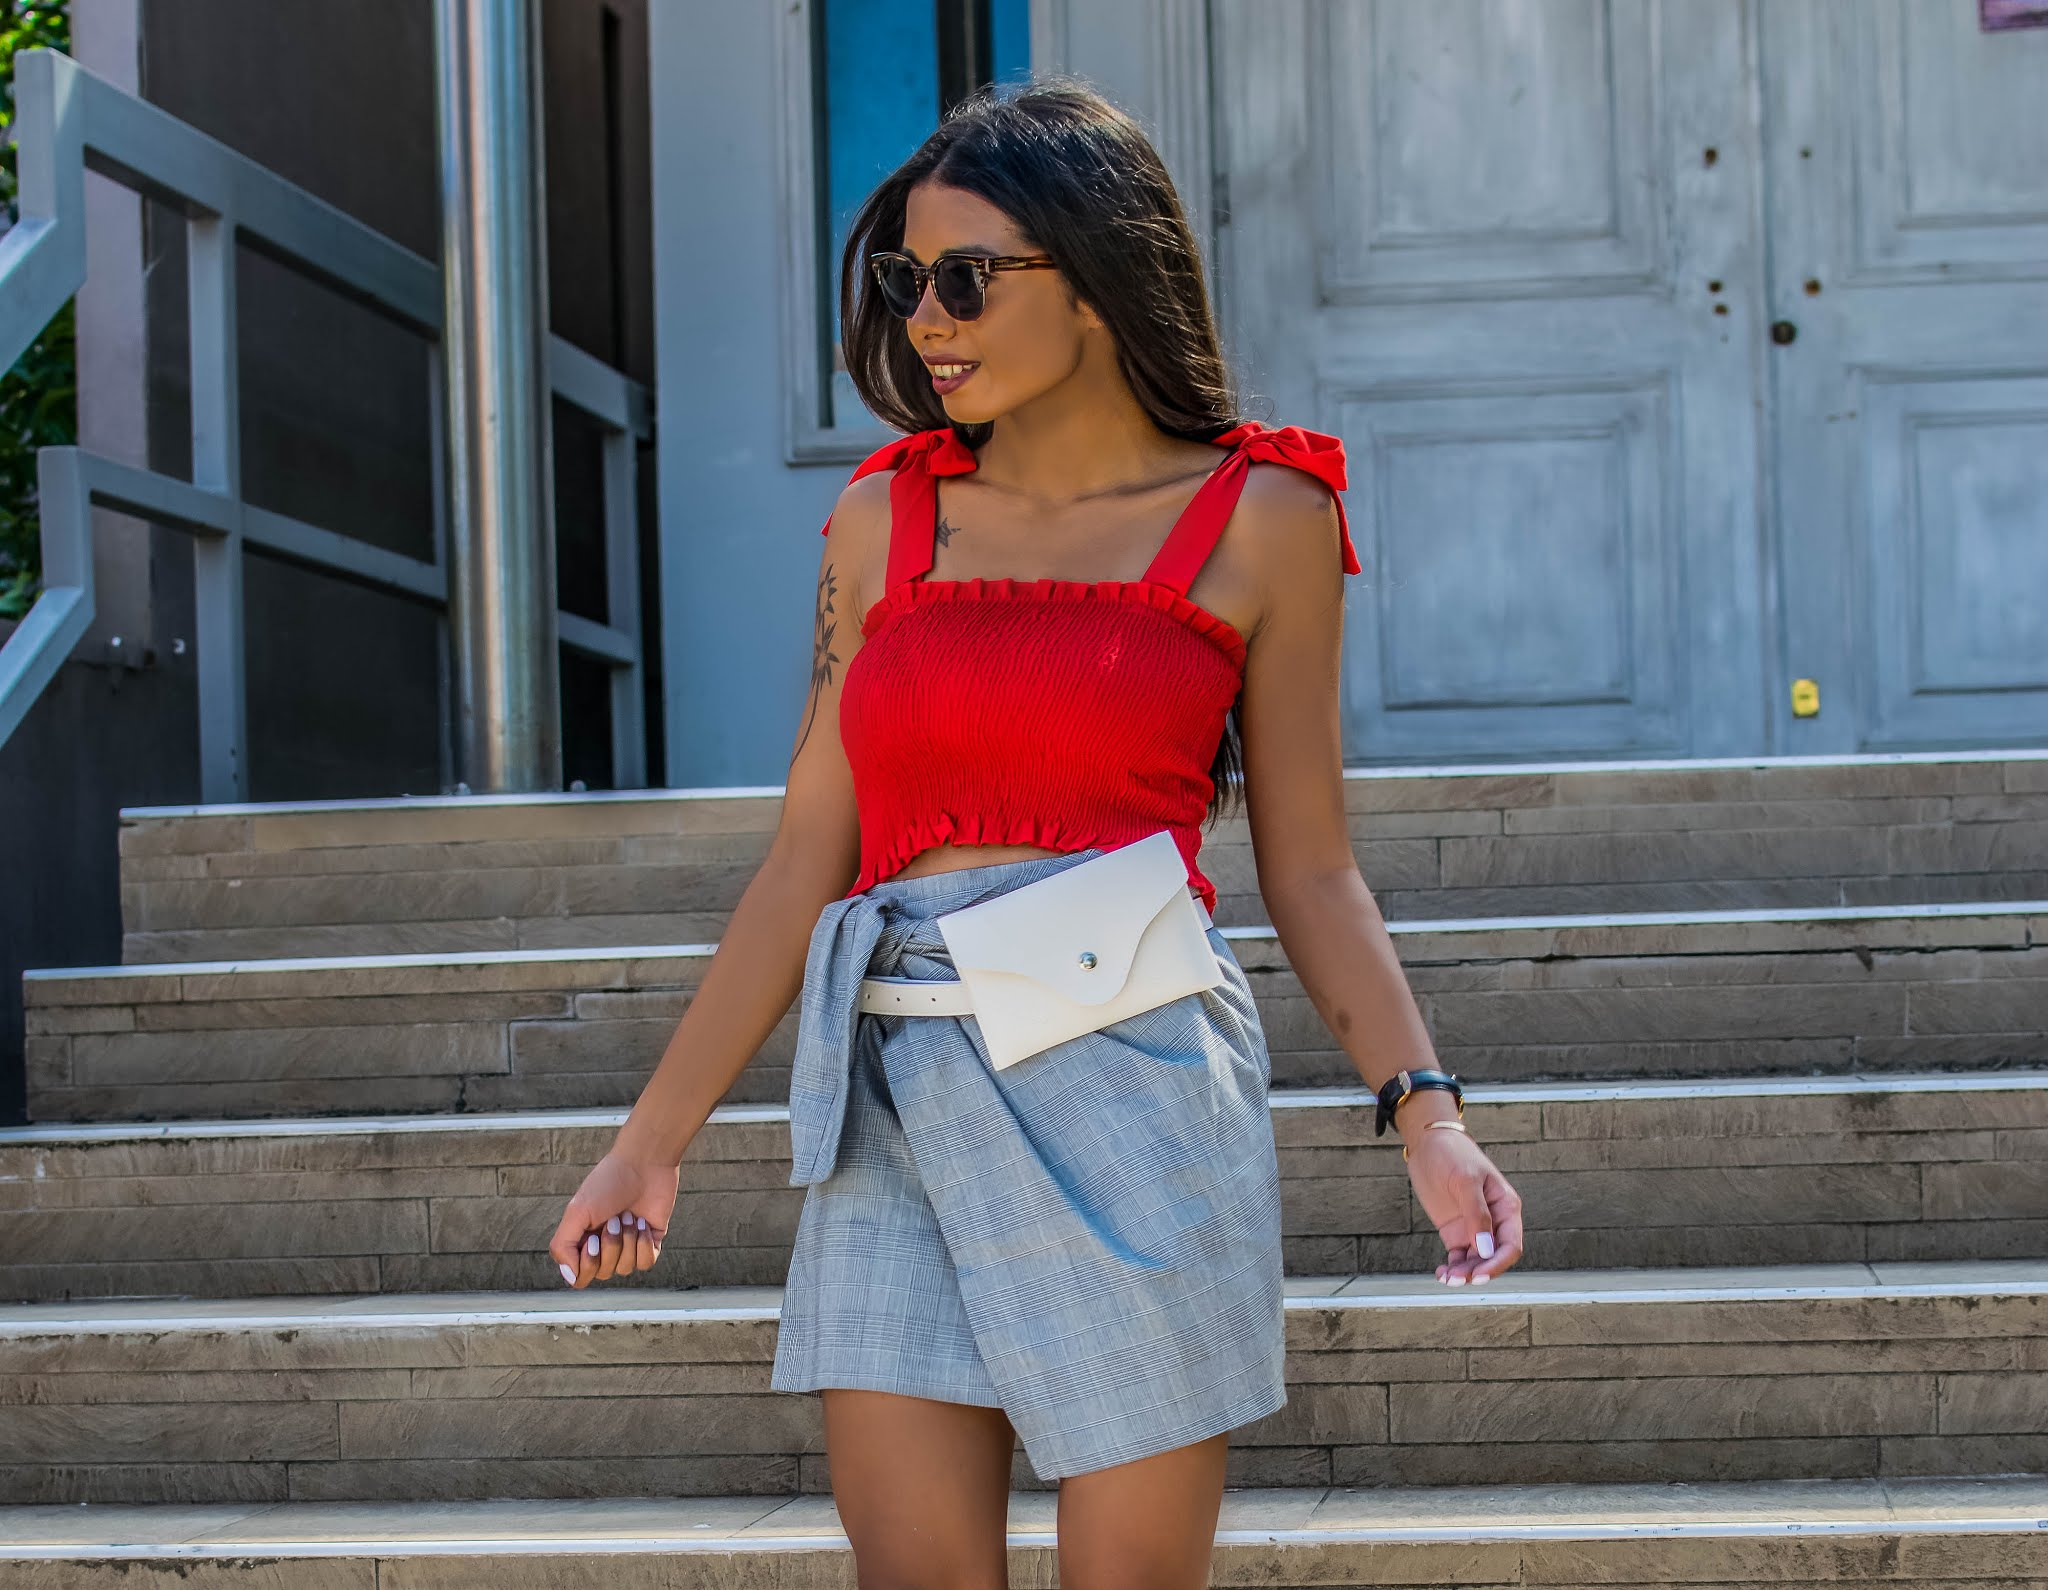 plaid skirt outfit inspiration for summer